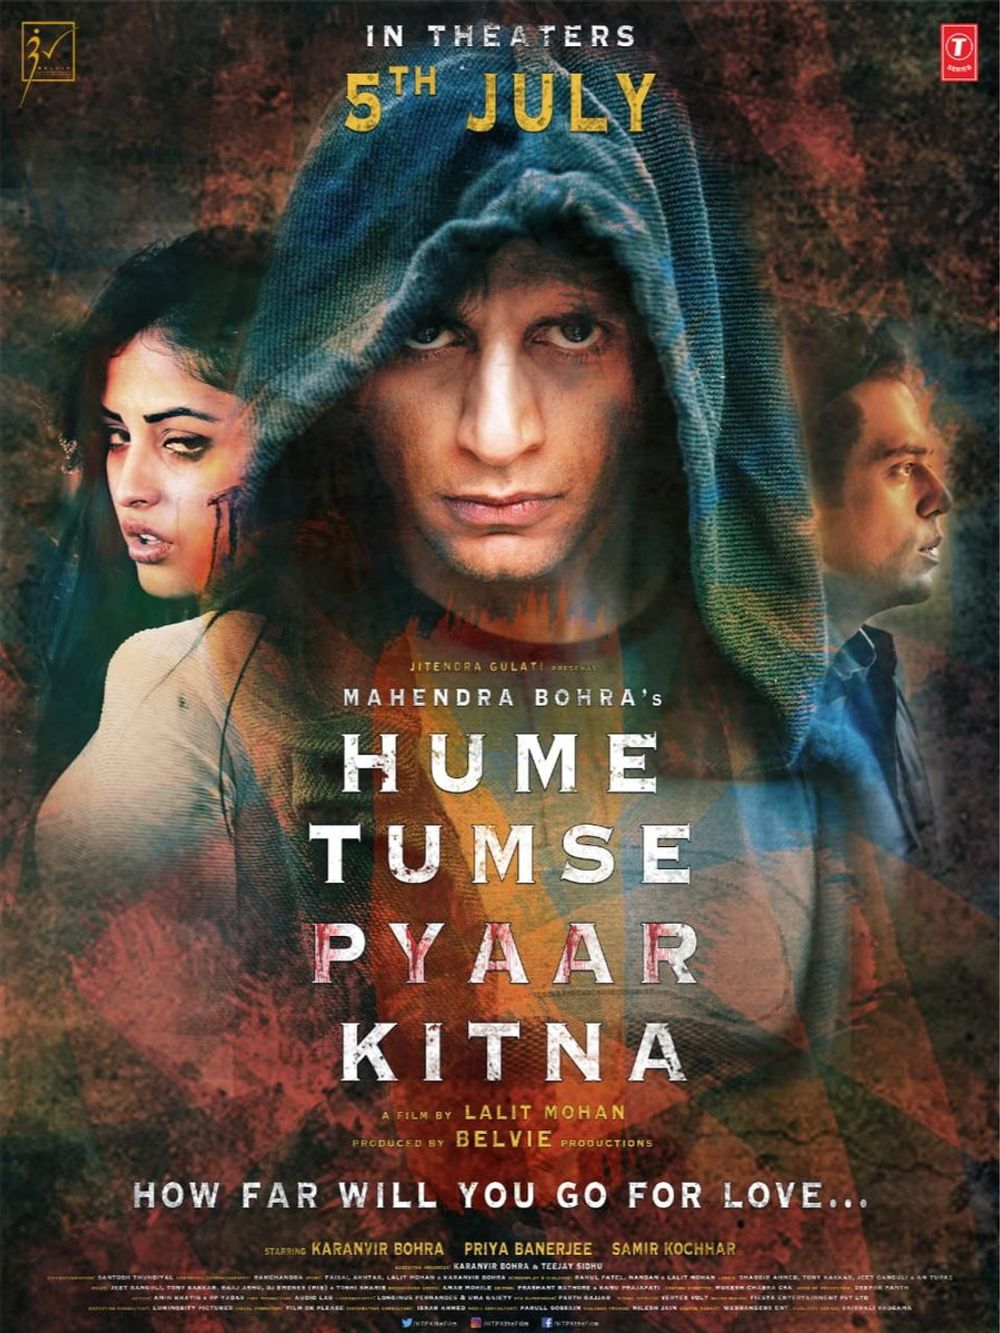 Hume Tumse Pyaar Kitna Movie Review